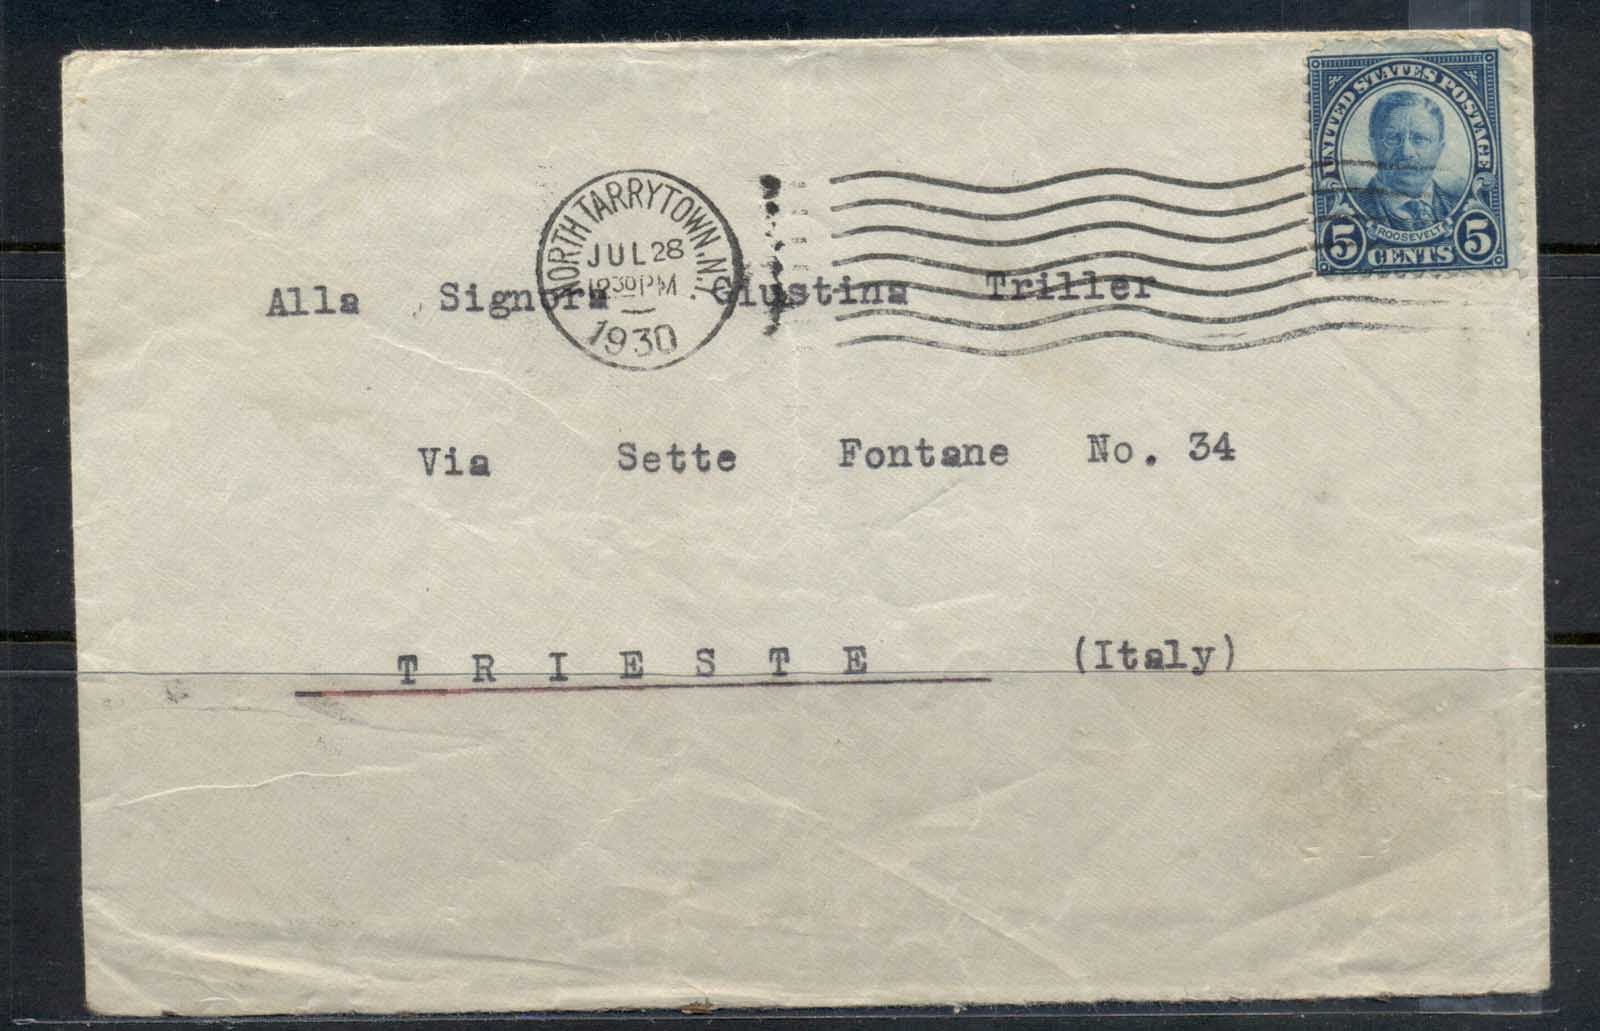 USA 1922-38 Fourth Bureau Roosevelt 5c, North Tarrytown 1930 to Italy cover